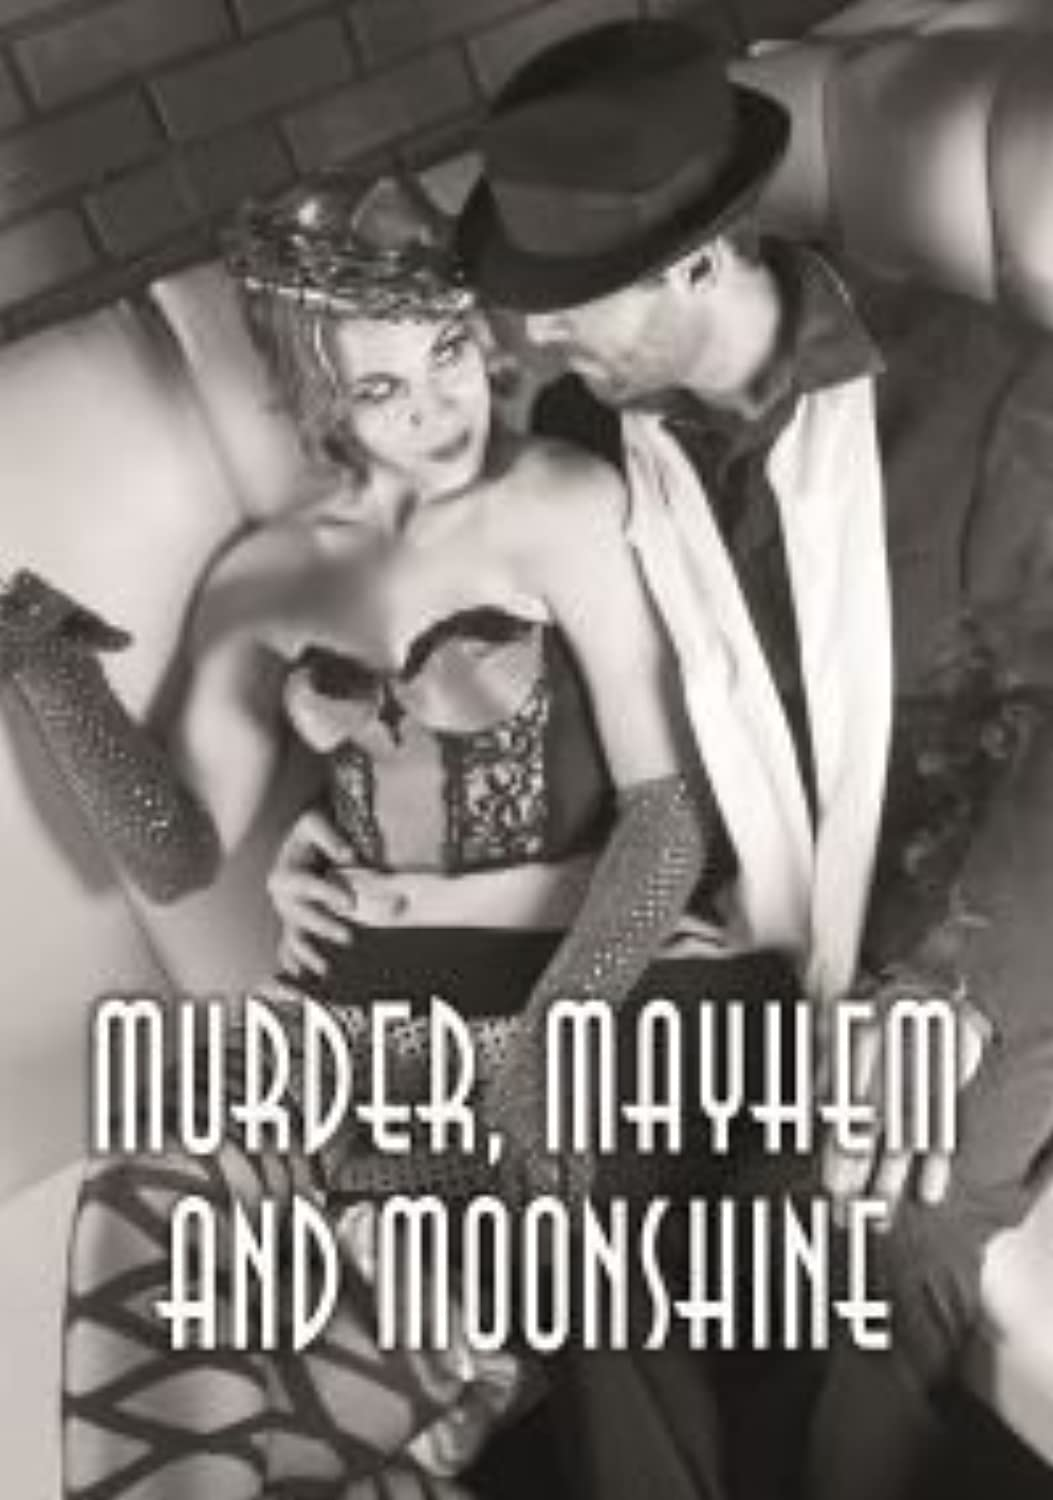 Murder, Mayhem and Moonshine  murder mystery game for 8 players